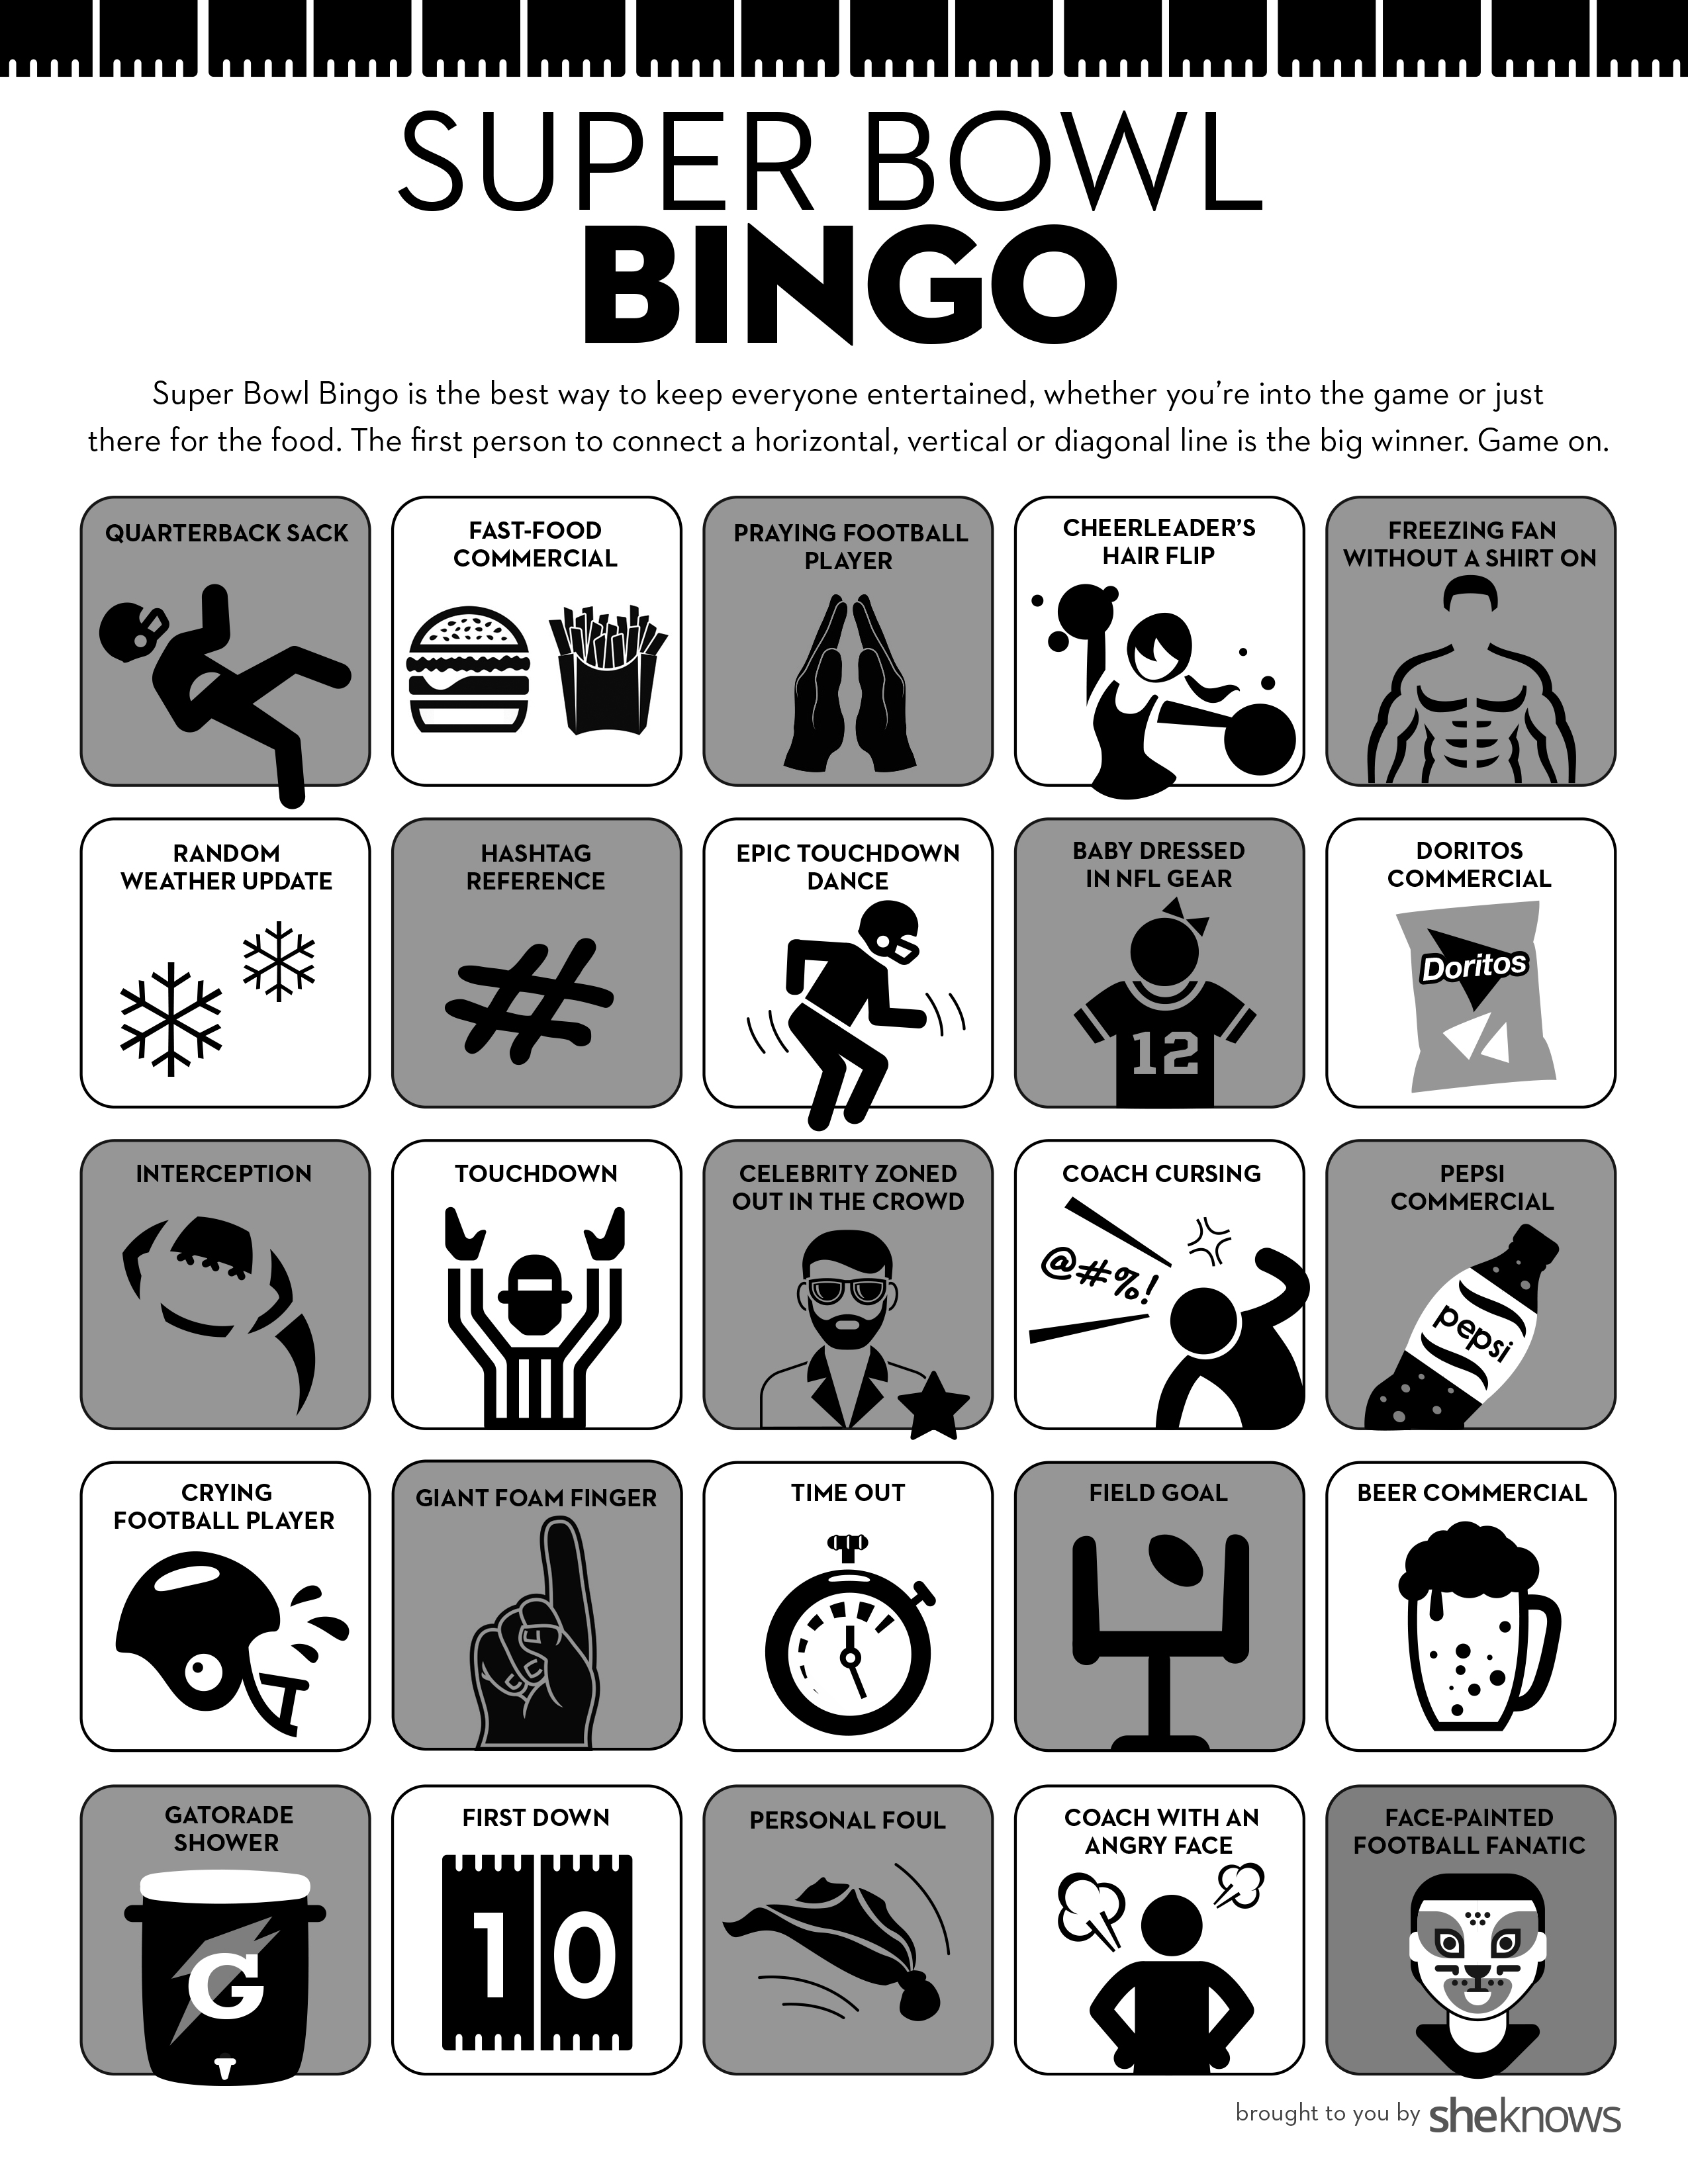 picture relating to Superbowl Boards Printable referred to as Tremendous Bowl Bingo Is the Great Celebration Activity for Everybody